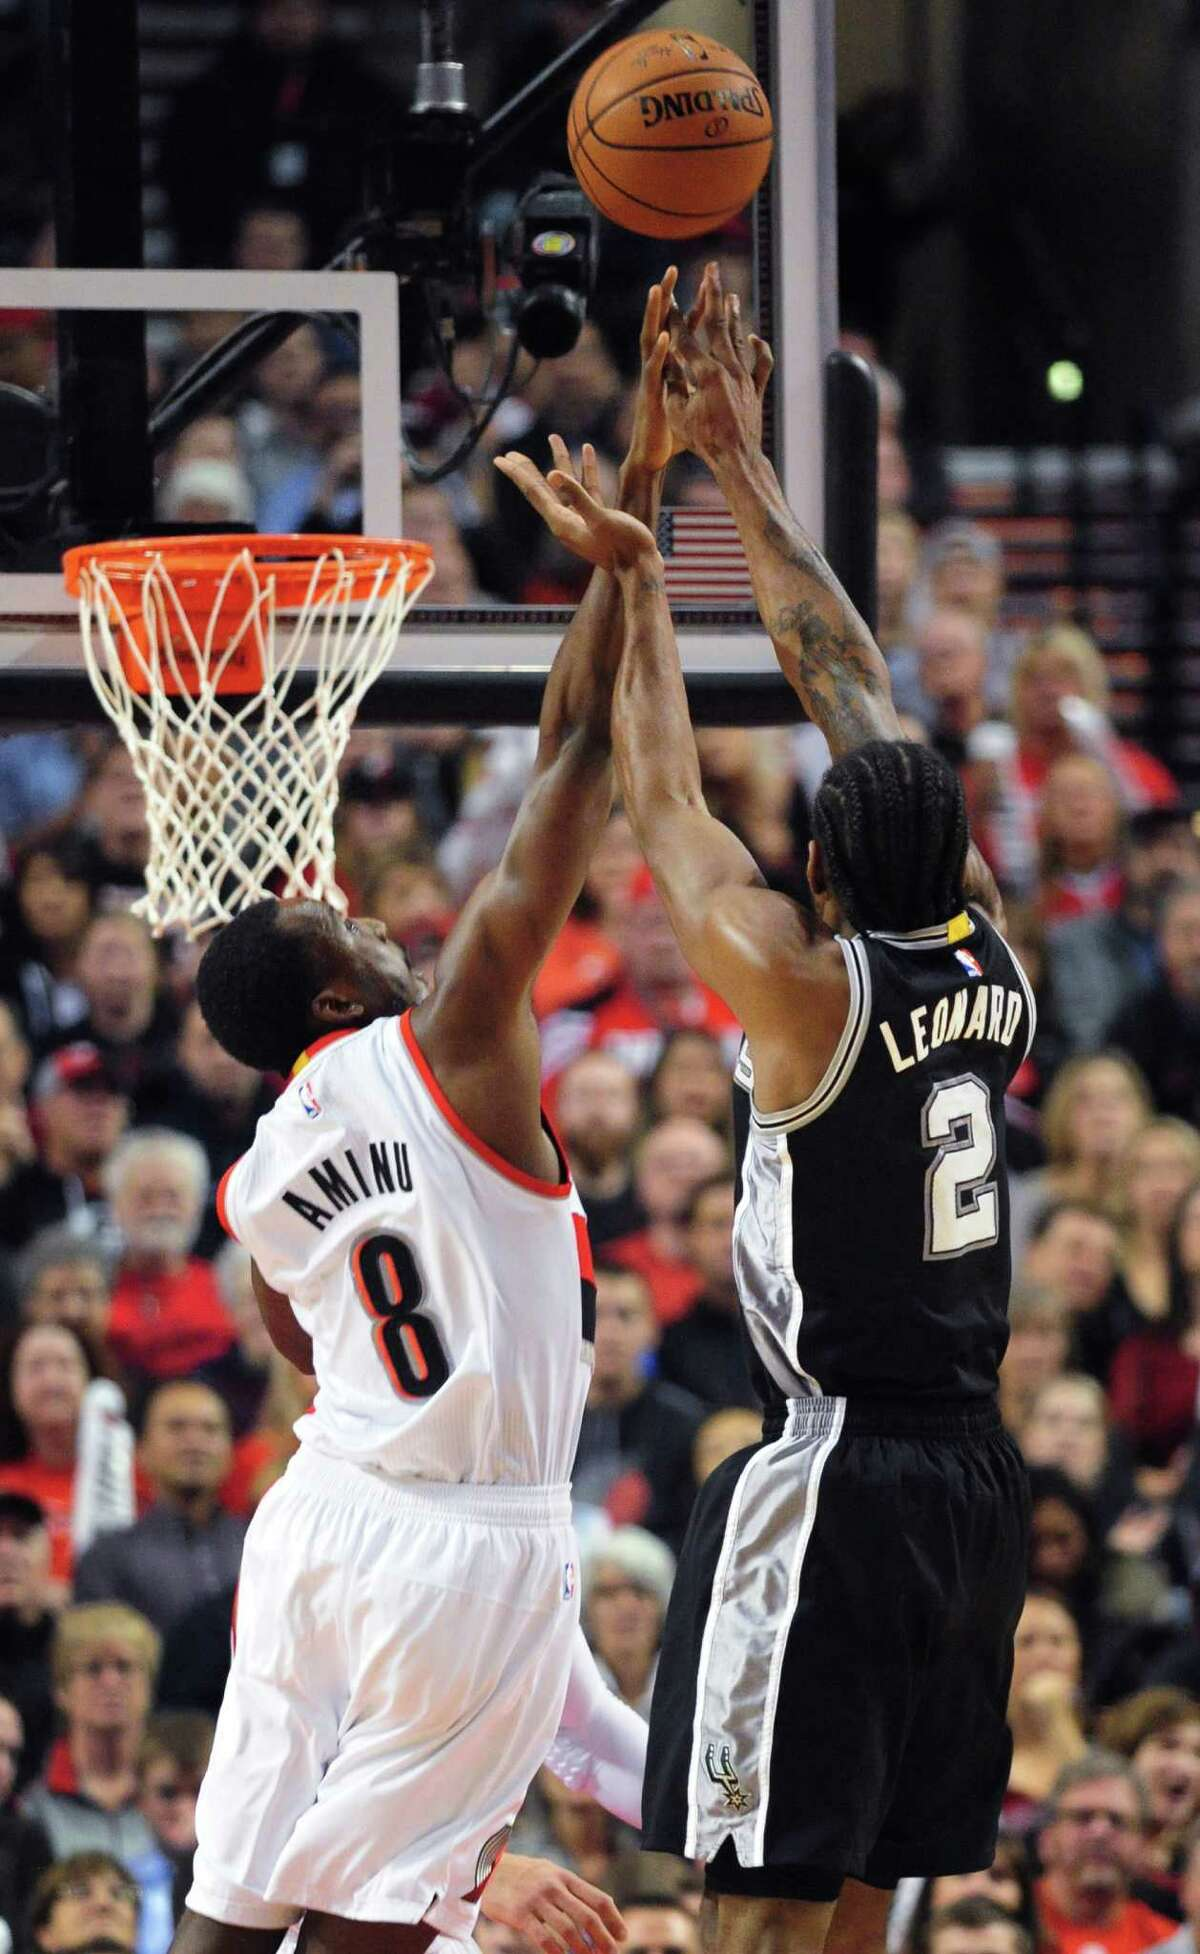 San Antonio Spurs forward Kawhi Leonard (2) shoots next to Portland Trail Blazers forward Al-Farouq Aminu (8) during the first quarter of an NBA basketball game in Portland, Ore., Wednesday, Nov. 11, 2015. (AP Photo/Steve Dykes)